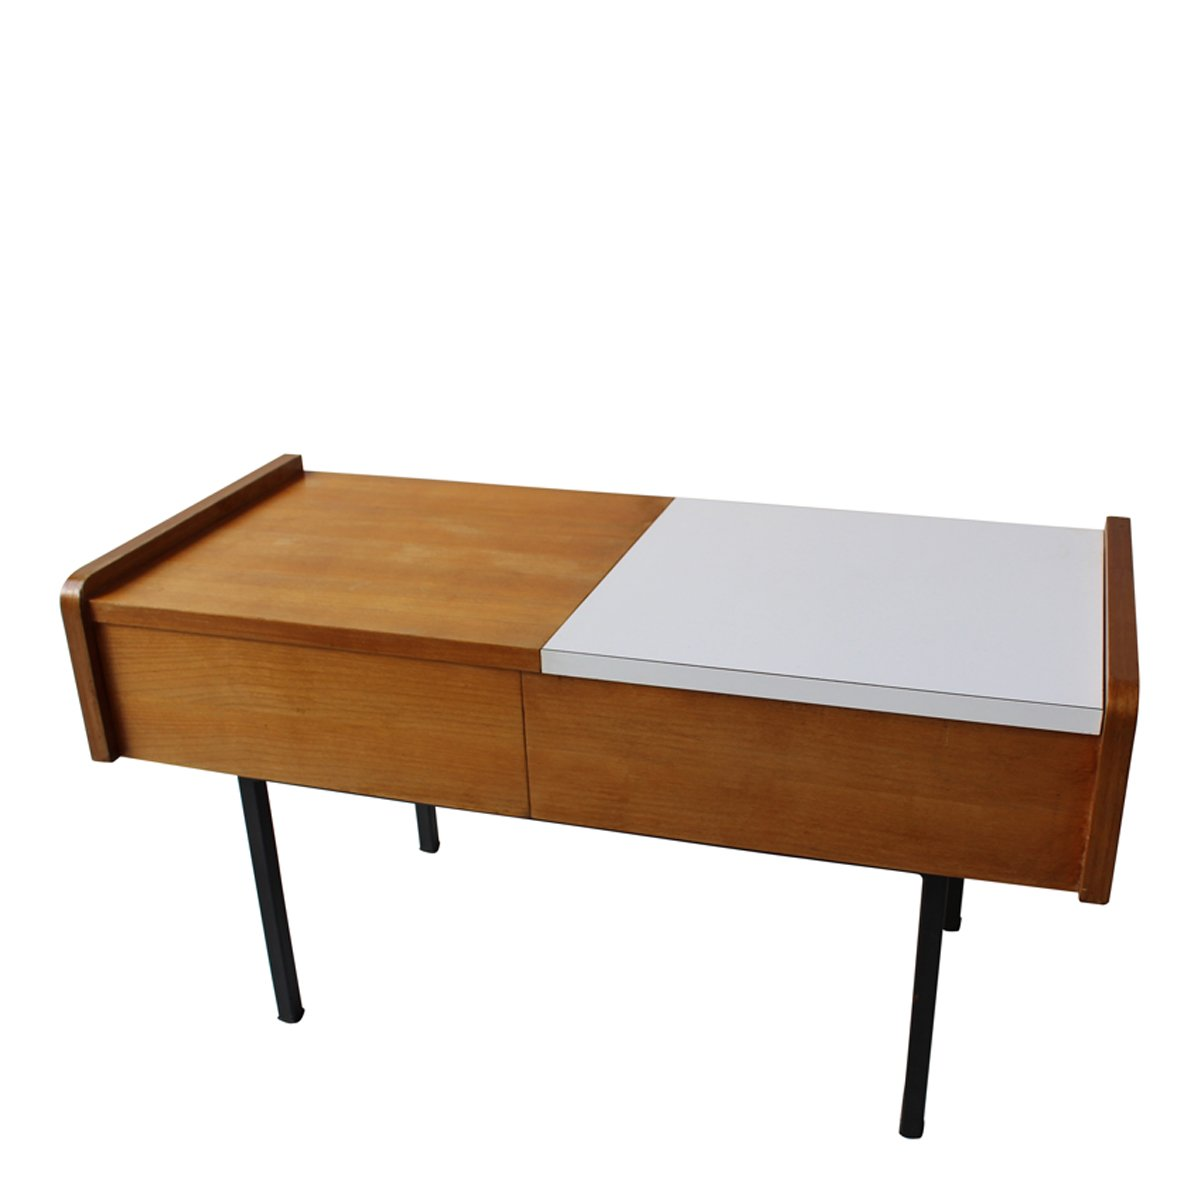 table console avec rangement france 1950s en vente sur. Black Bedroom Furniture Sets. Home Design Ideas